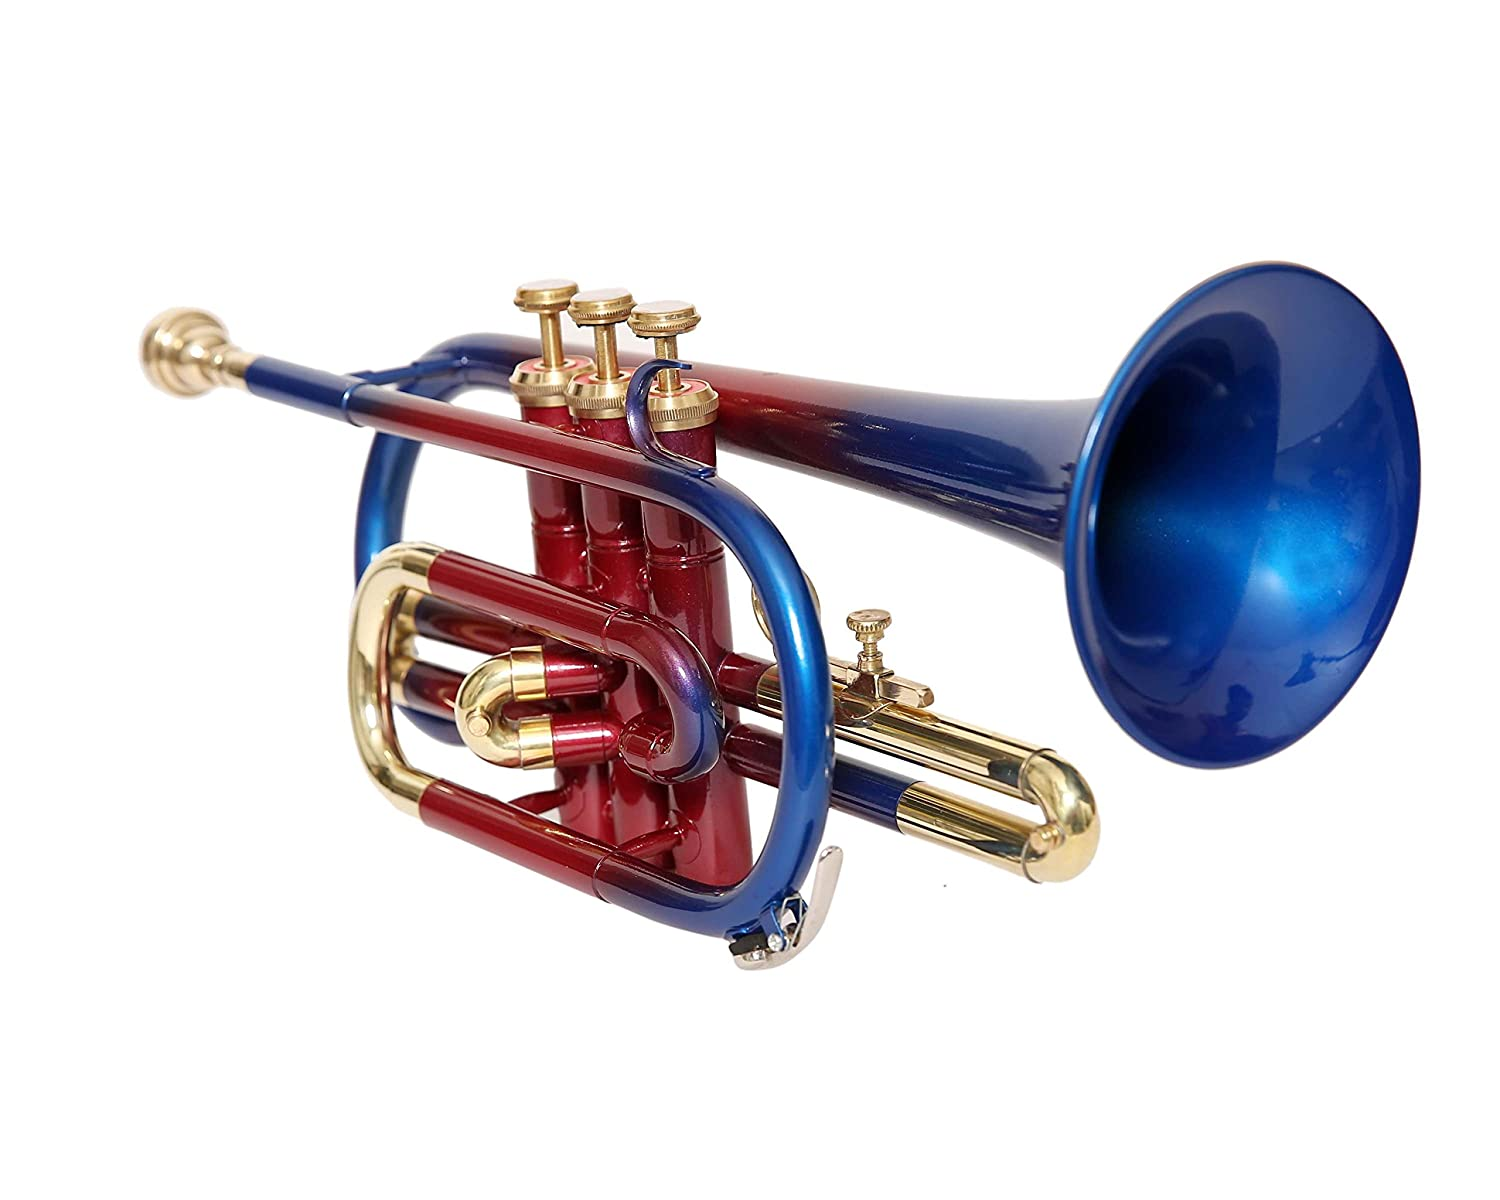 C-11 CORNET Bb PITCH MULTI COLOR WITH HARD CASE AND MOUTHPIECE Nasir Ali & Co.